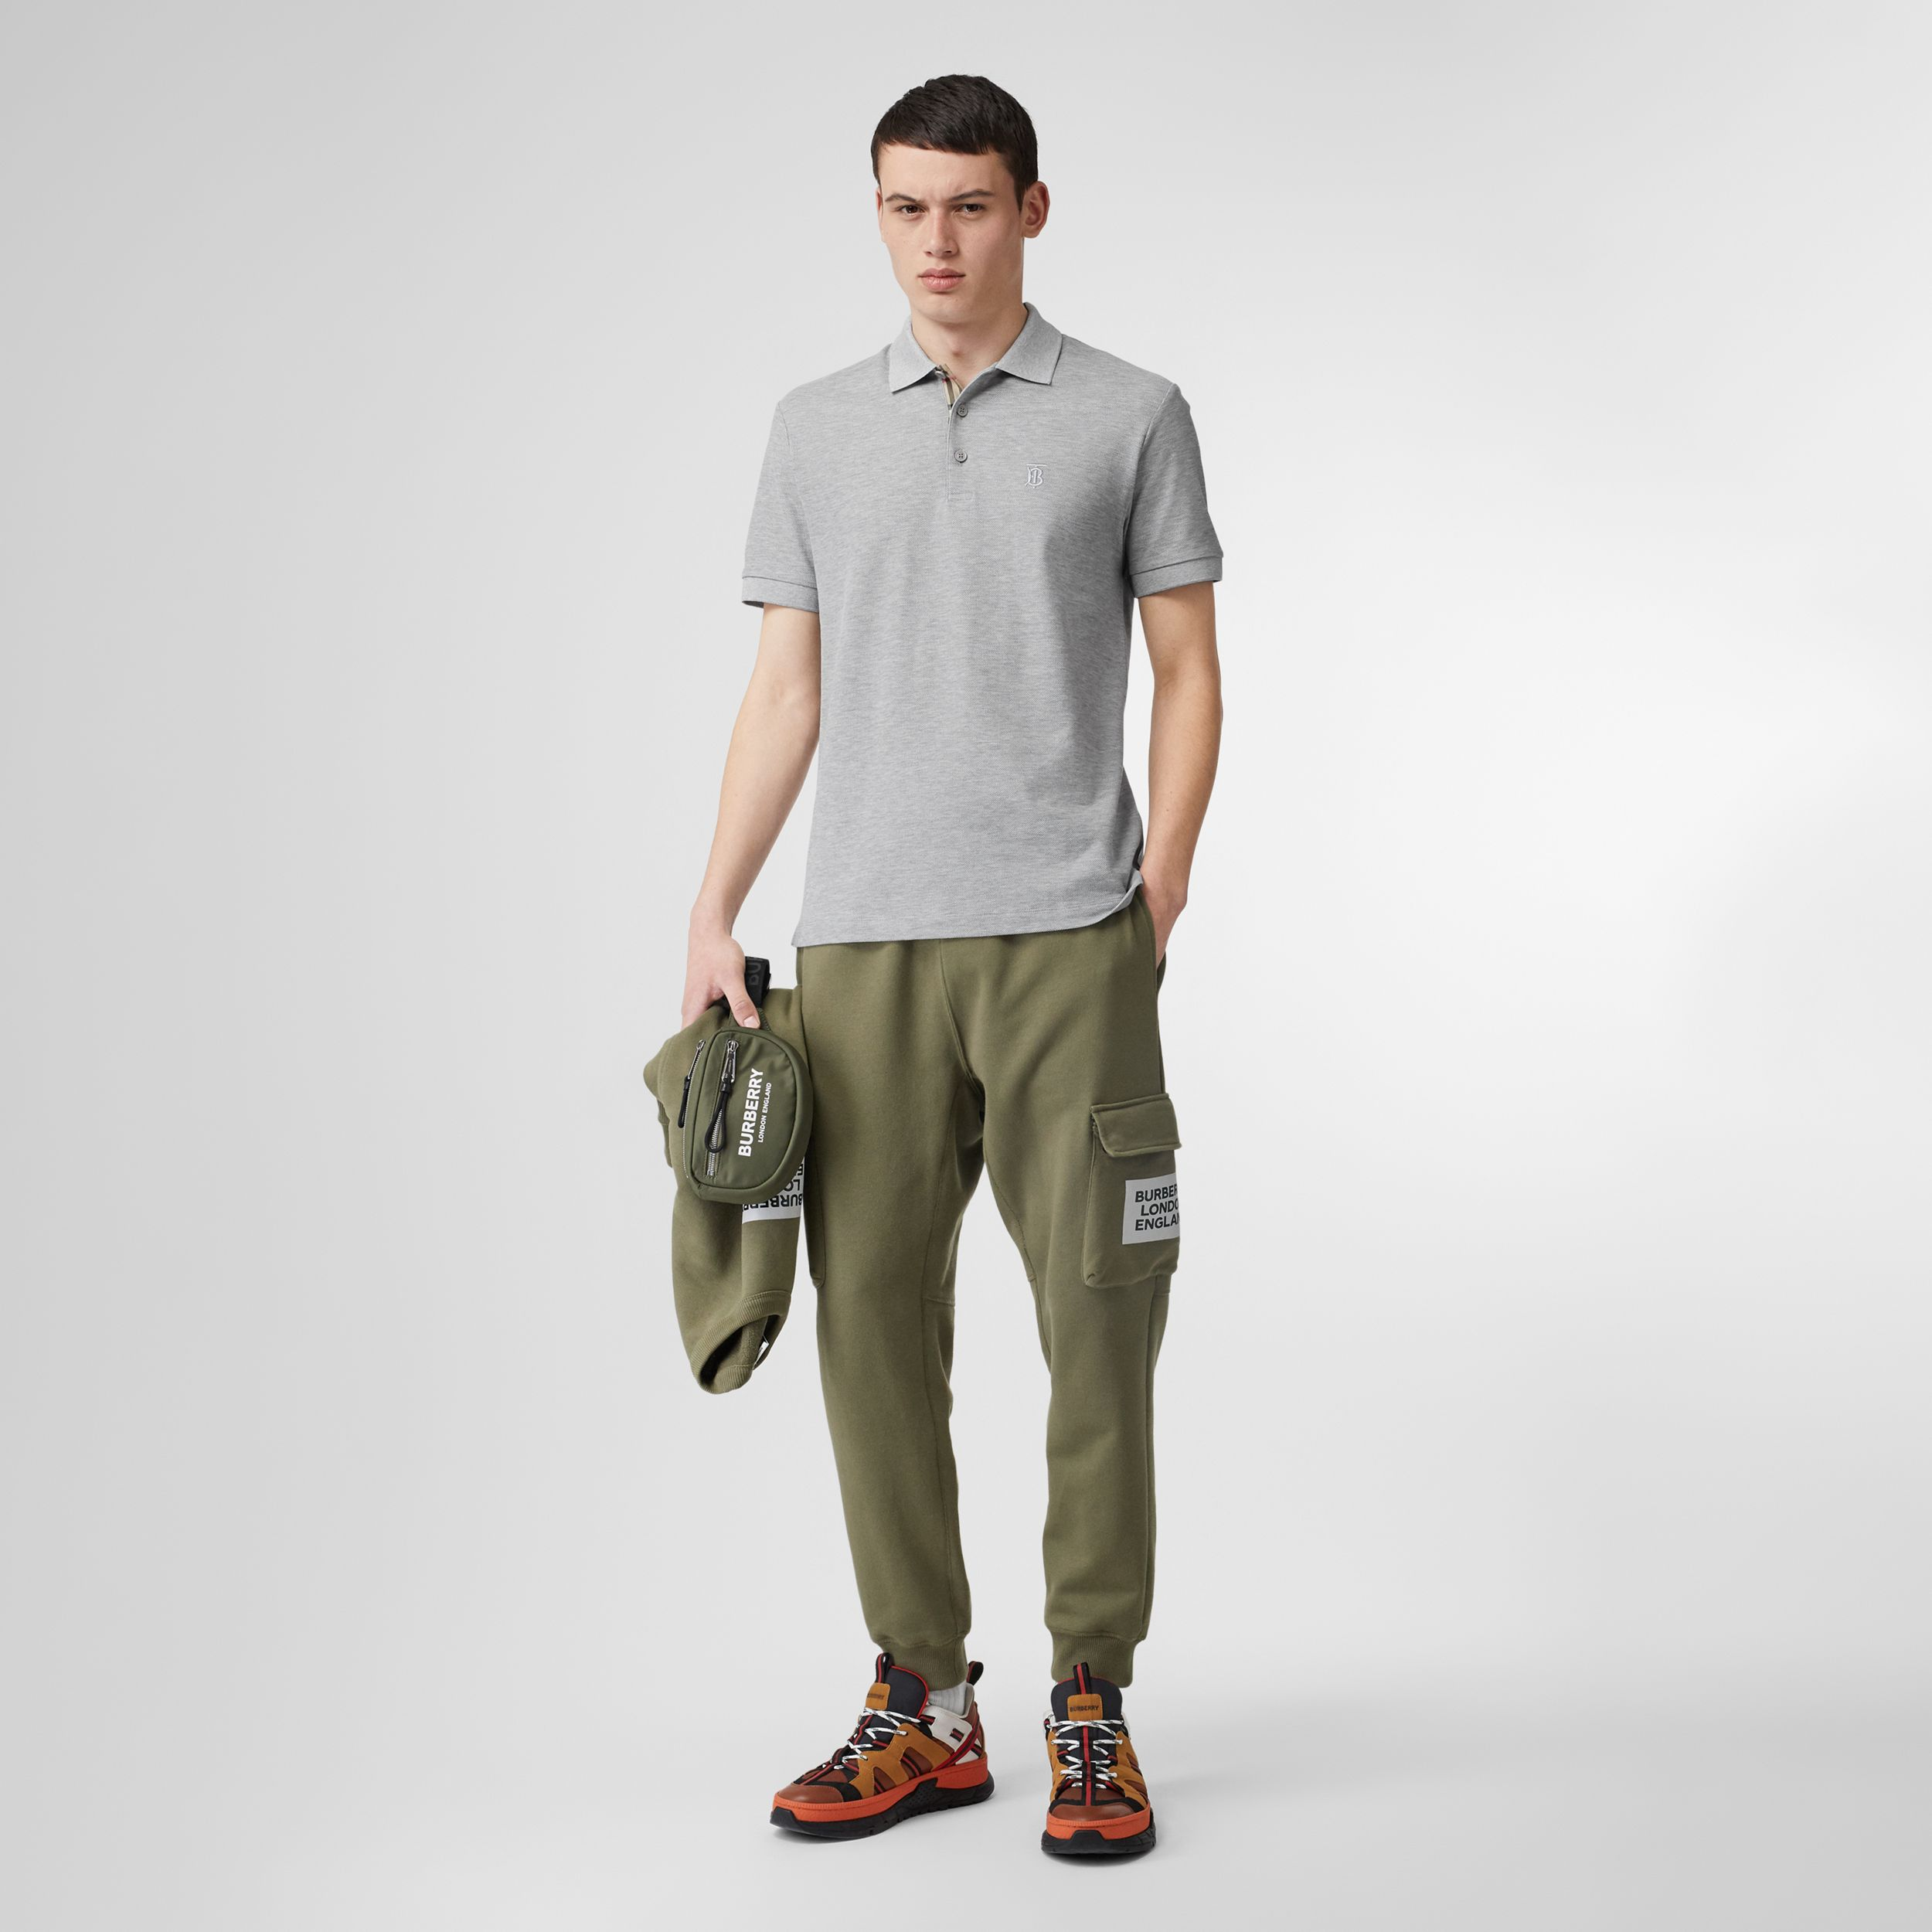 Monogram Motif Cotton Piqué Polo Shirt in Pale Grey Melange - Men | Burberry - 1